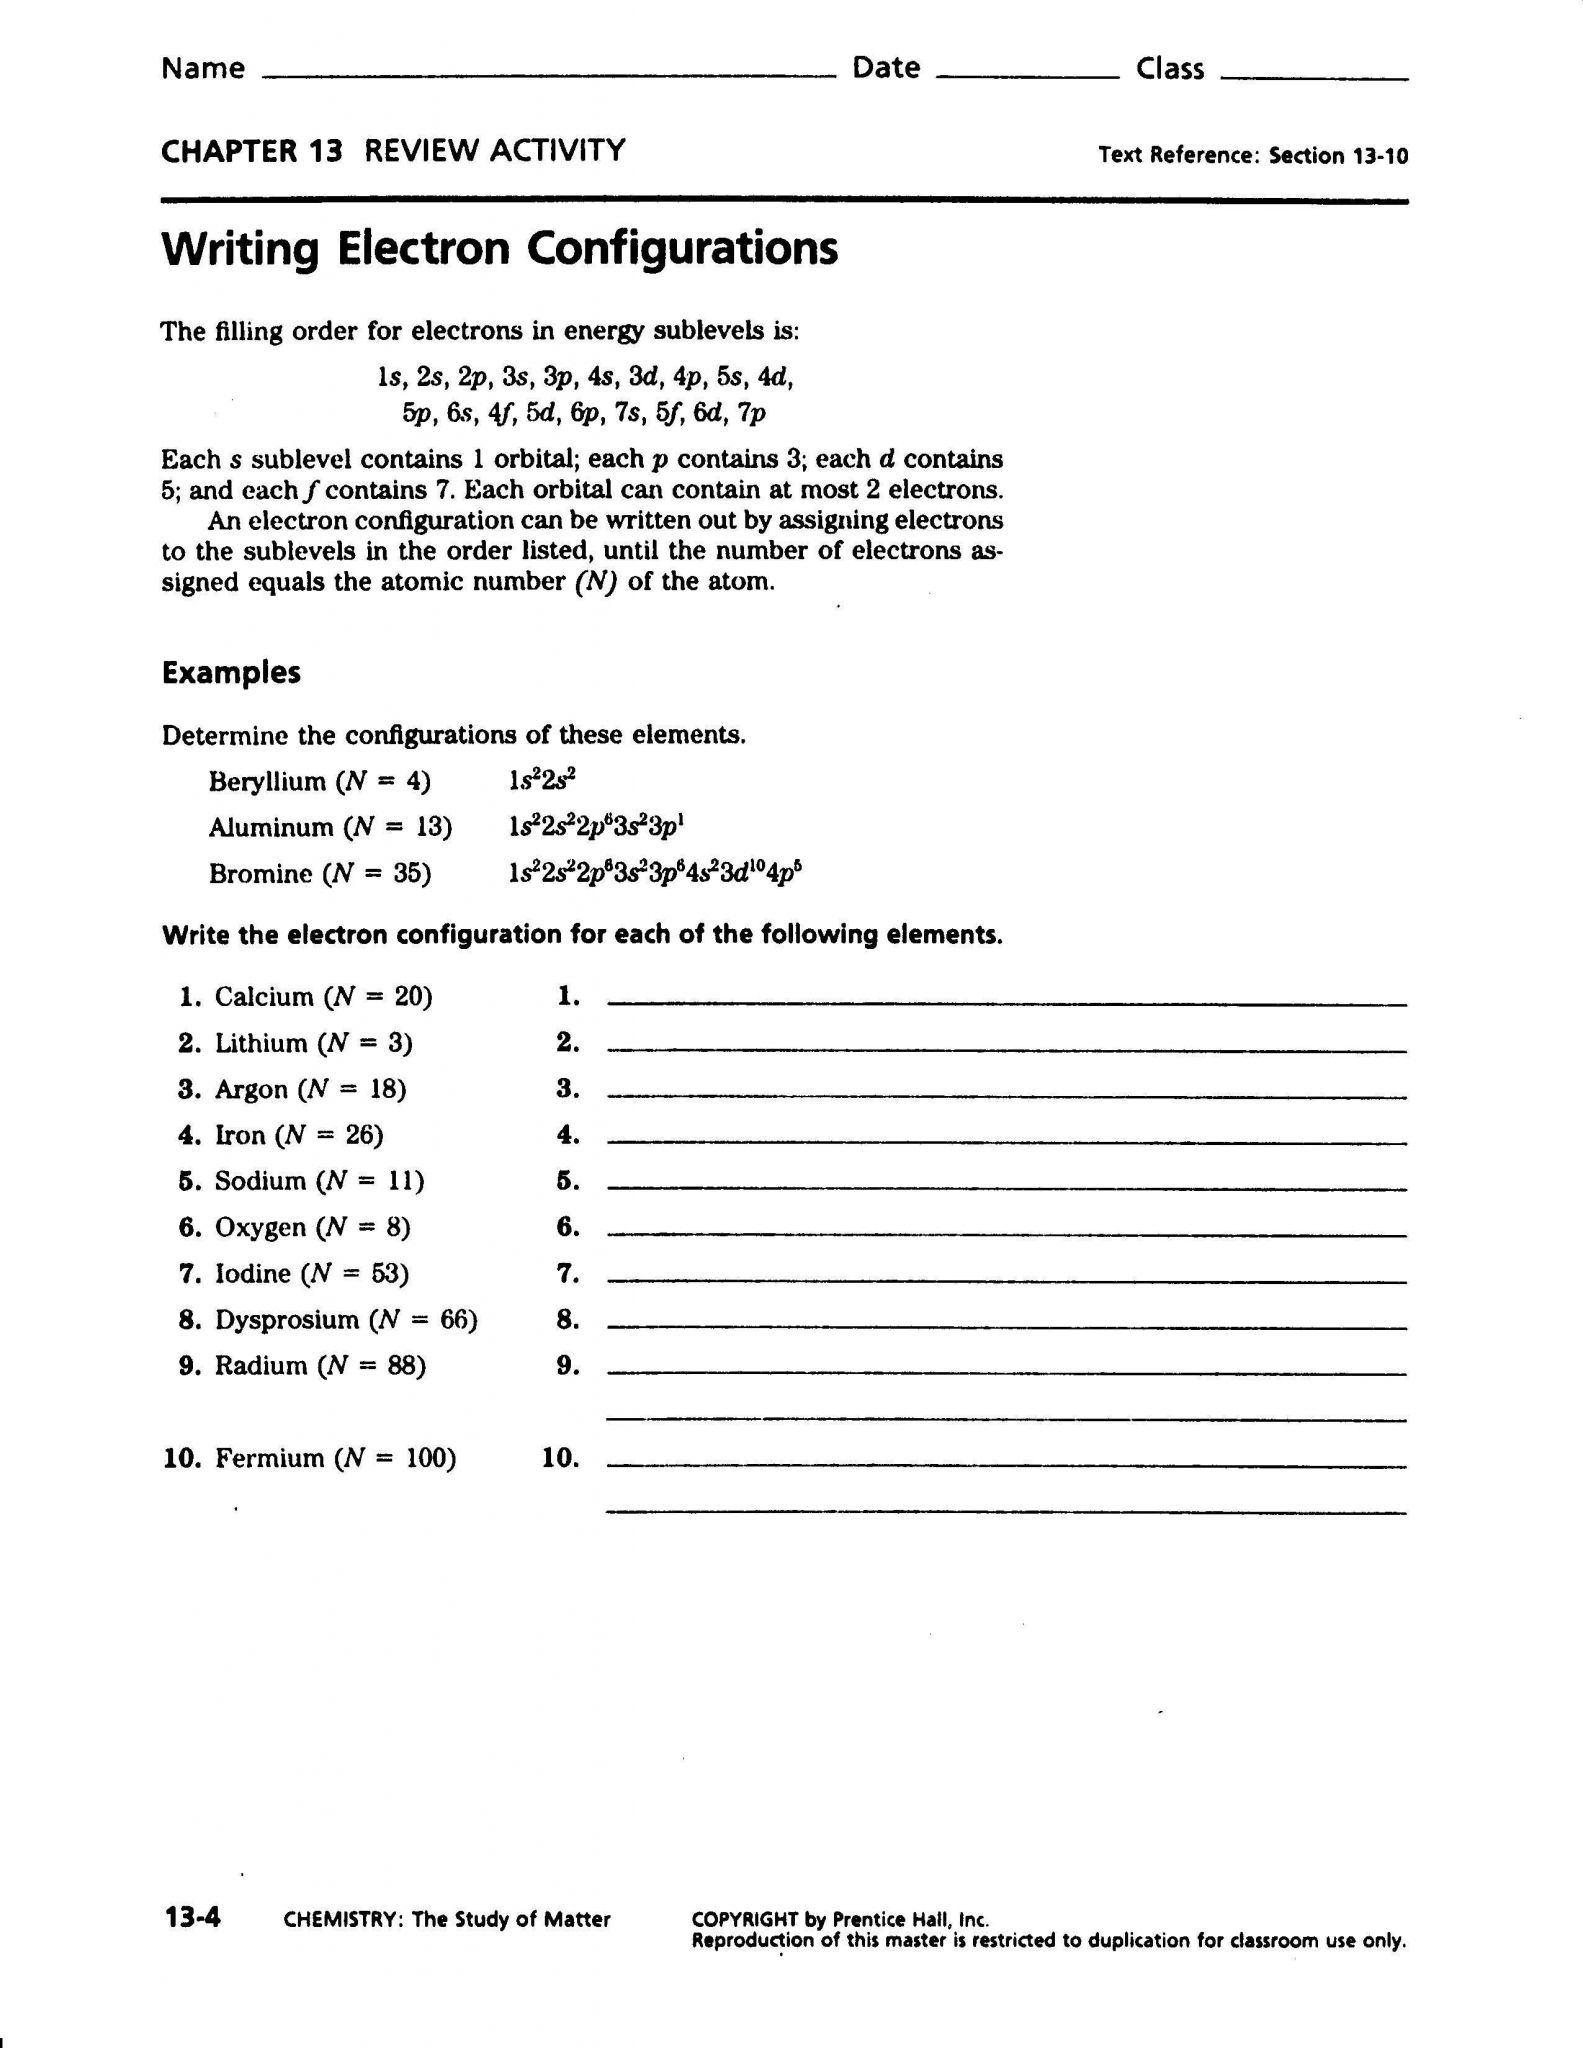 Naming Compounds Worksheet as Well as Periodic Table Trends New Unique Trends In Periodic Table Kowai